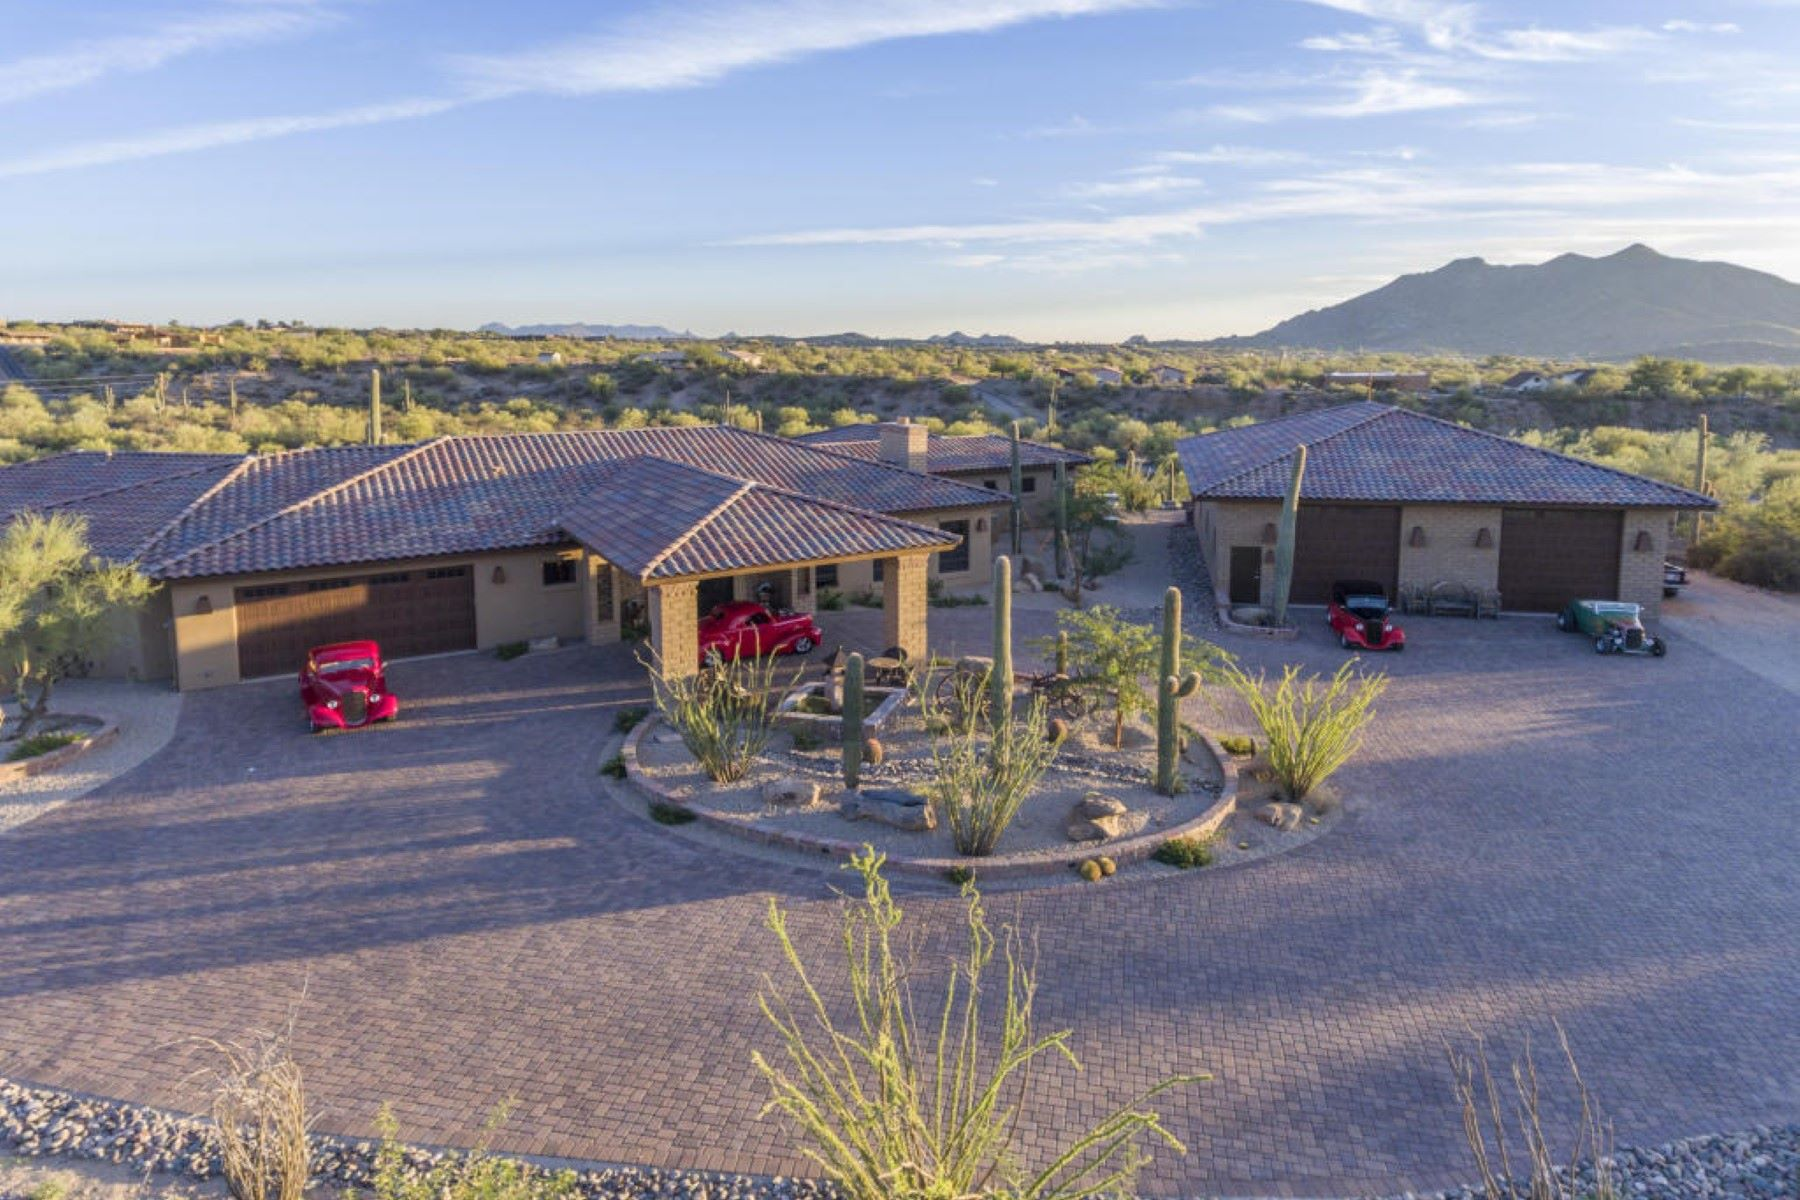 Villa per Vendita alle ore Gorgeous home with panaoramic mountain views 40111 N 72nd St Cave Creek, Arizona, 85331 Stati Uniti